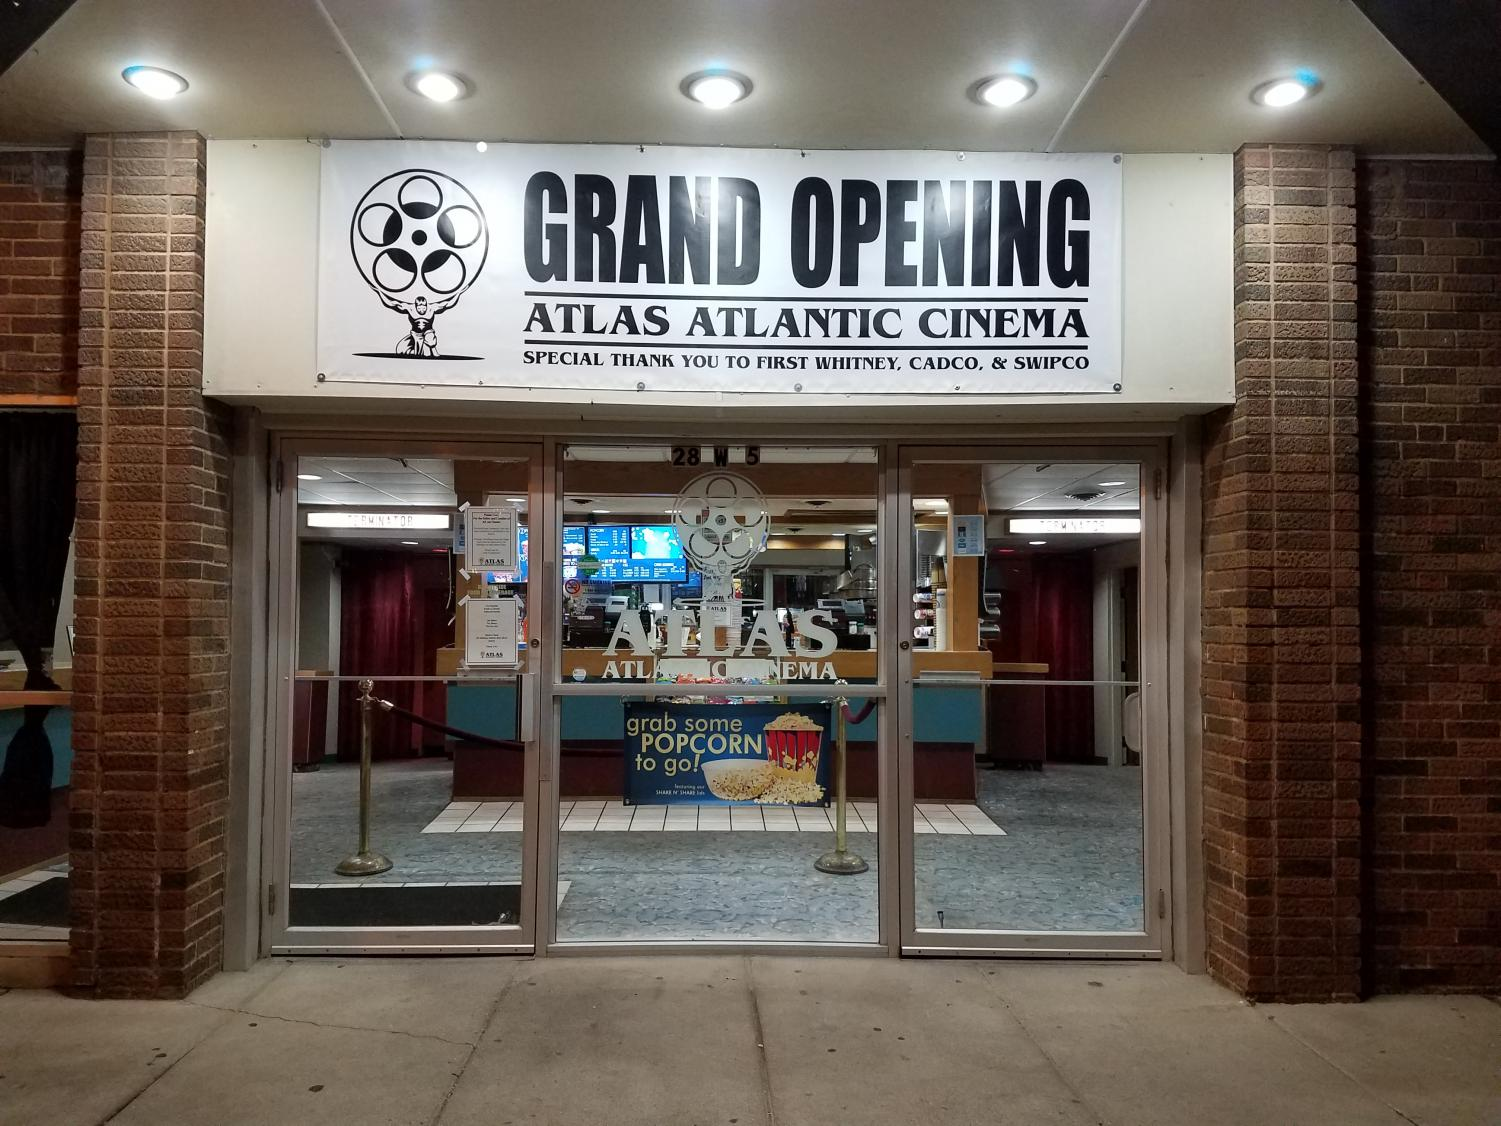 NEW BEGINNINGS -- The Atlas Atlantic Cinema opened on Friday, Nov. 1. There will be many changes under the new owners.